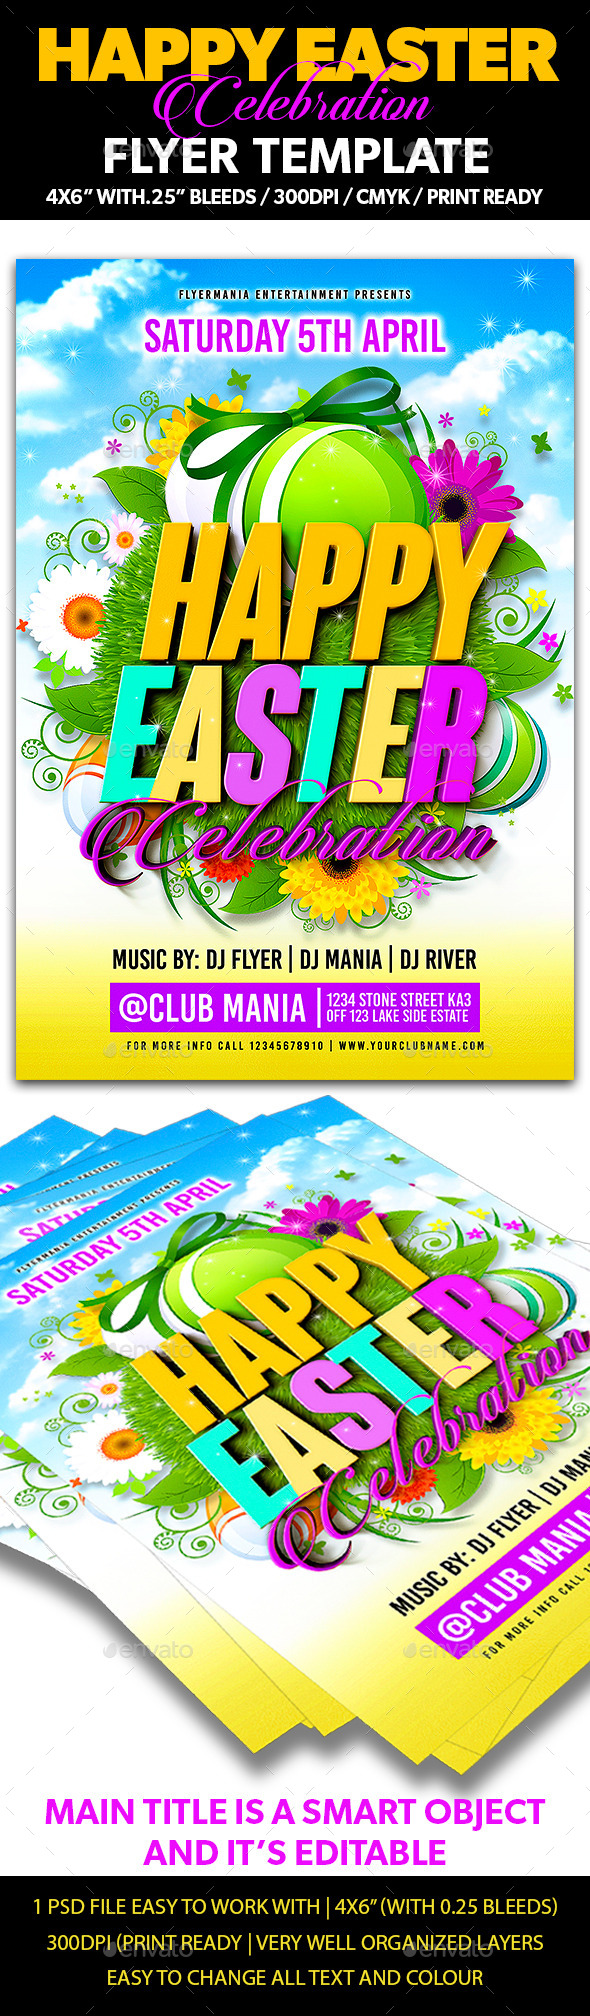 GraphicRiver Happy Easter Celebration Flyer Template 10785136